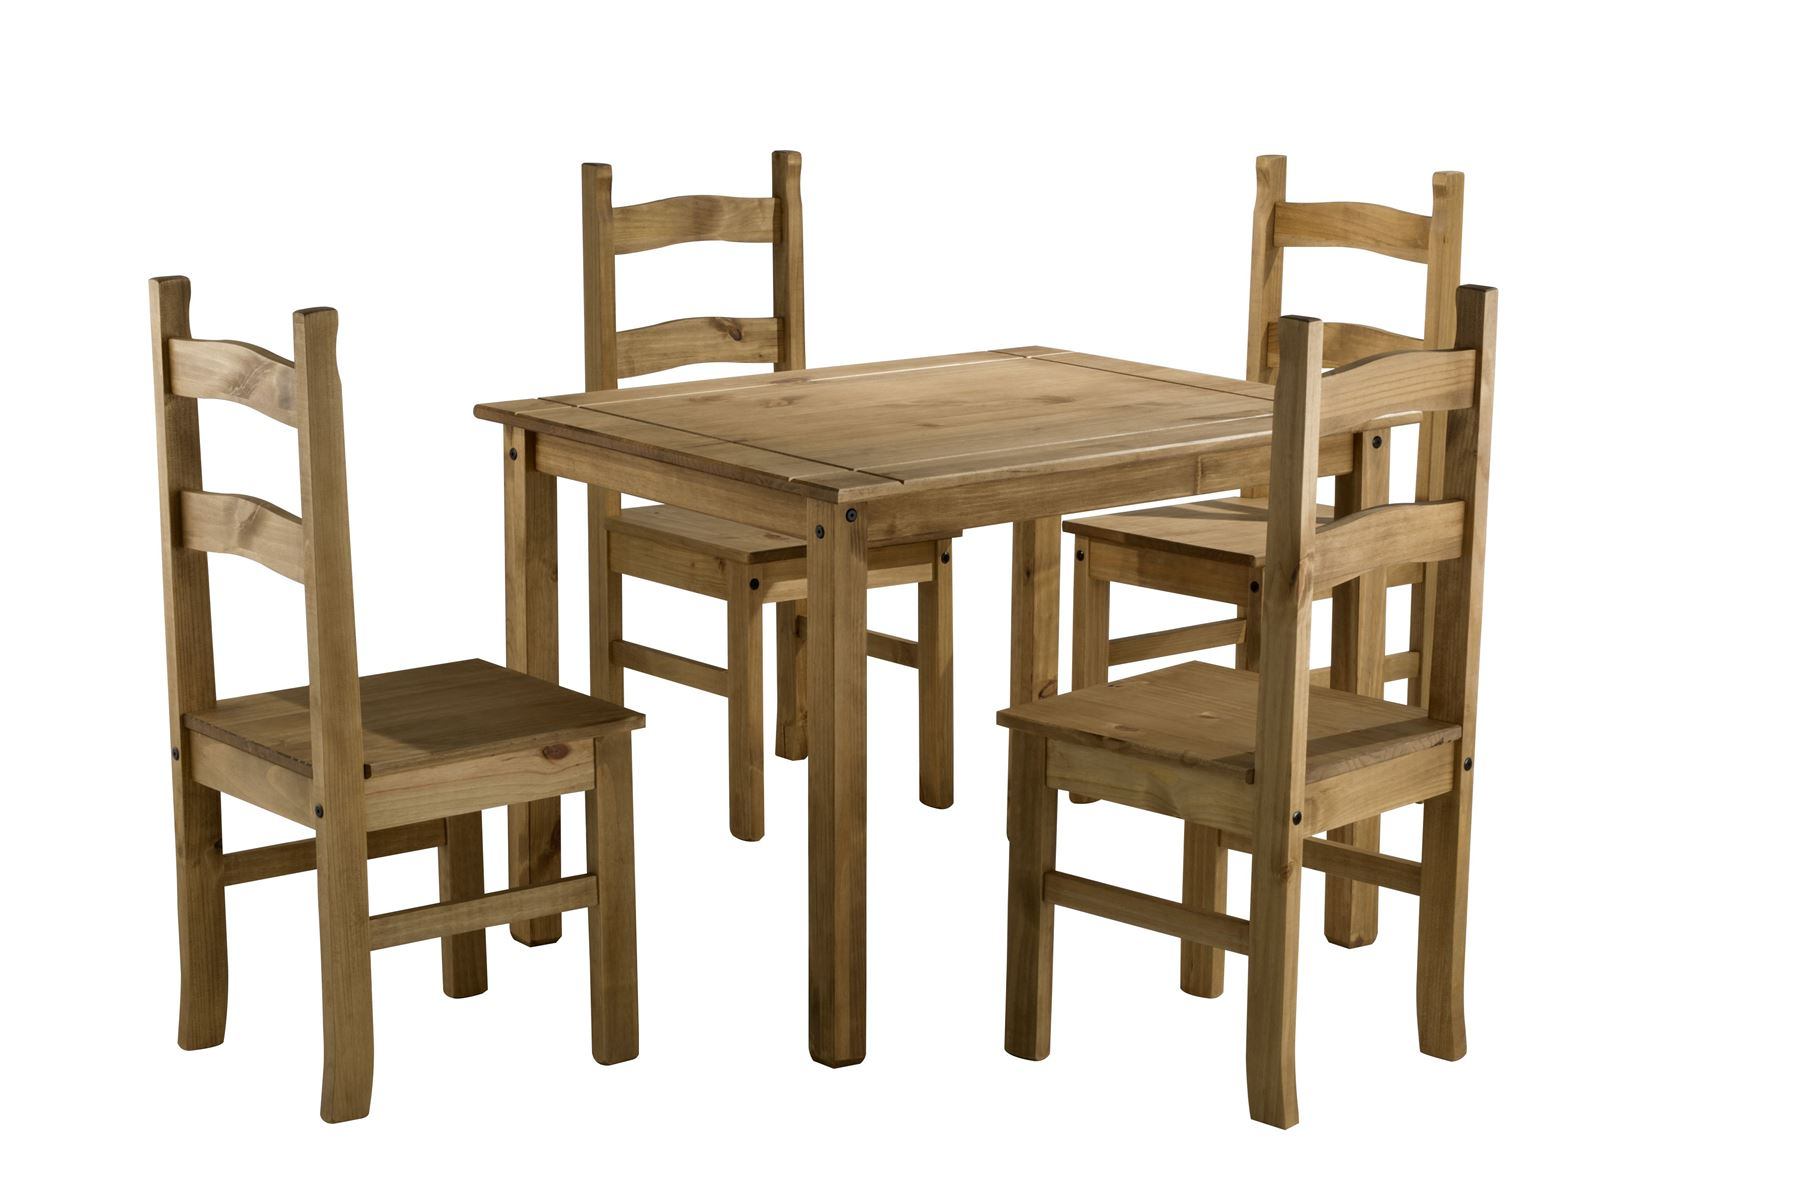 Corona Small Mexican Pine Dining Table & 4 Chairs Solid